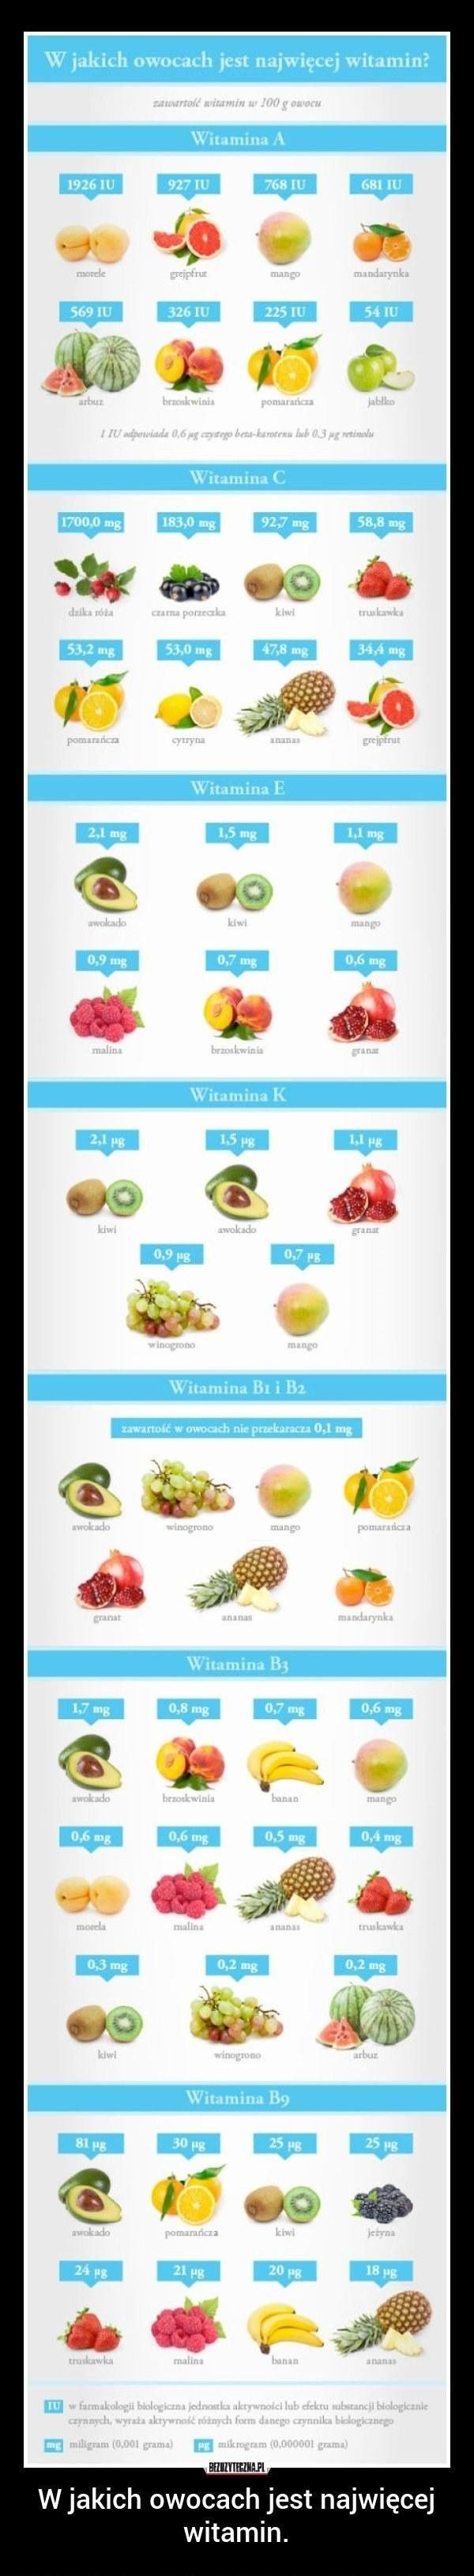 What fruit has the most vitamins. #body #health #fruits #people